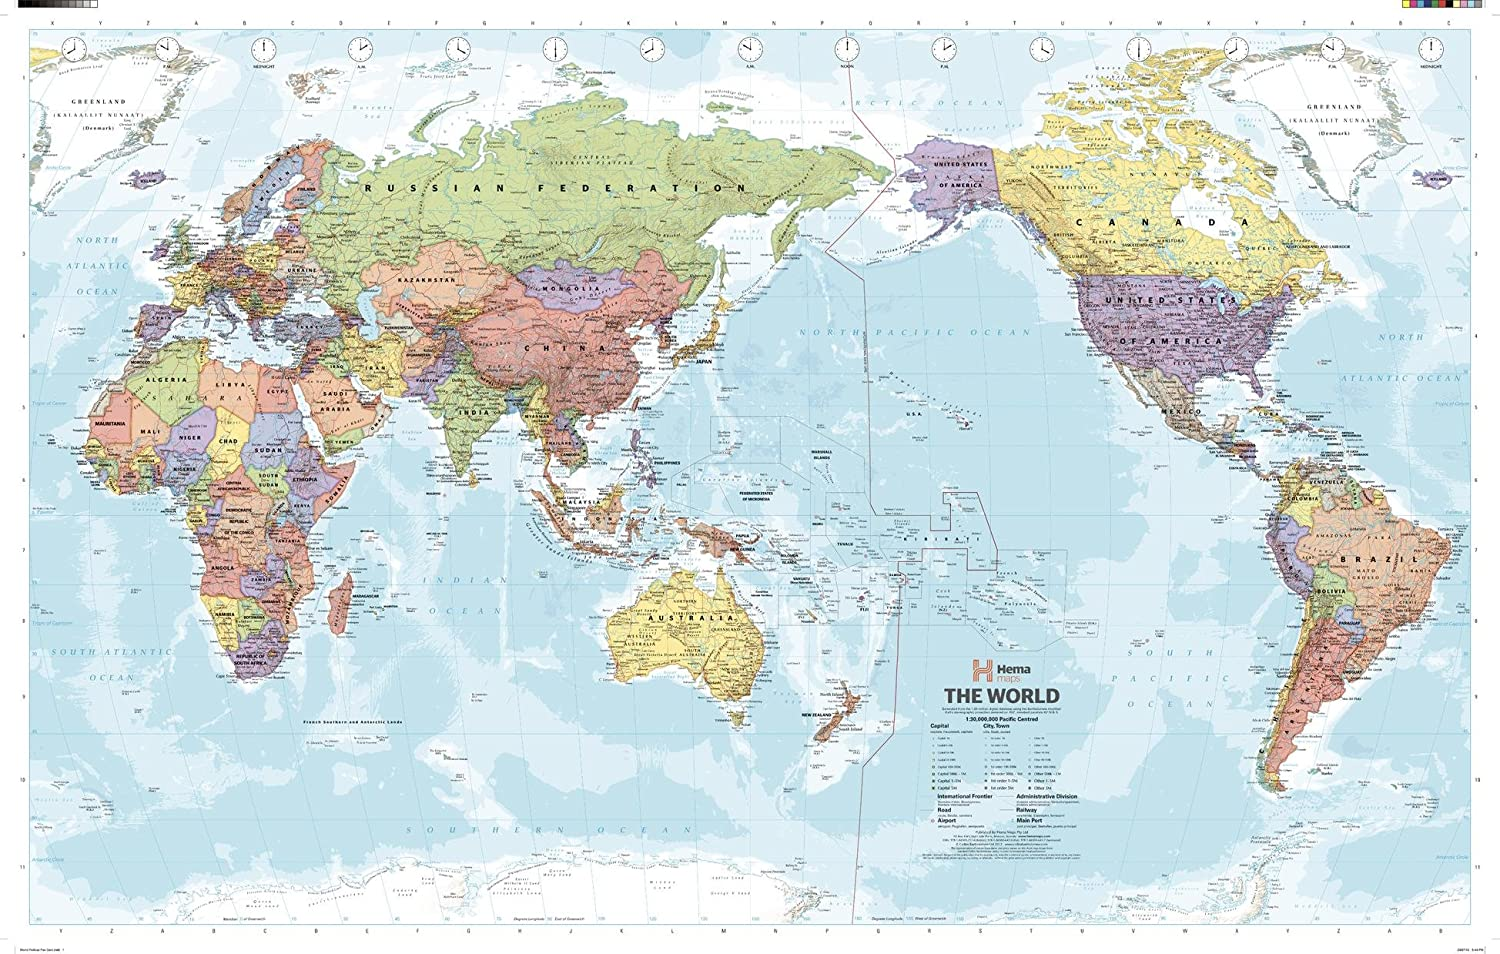 pacific centered world map Amazon Com Pacific Centred World Political Wall Map 40 75 X pacific centered world map